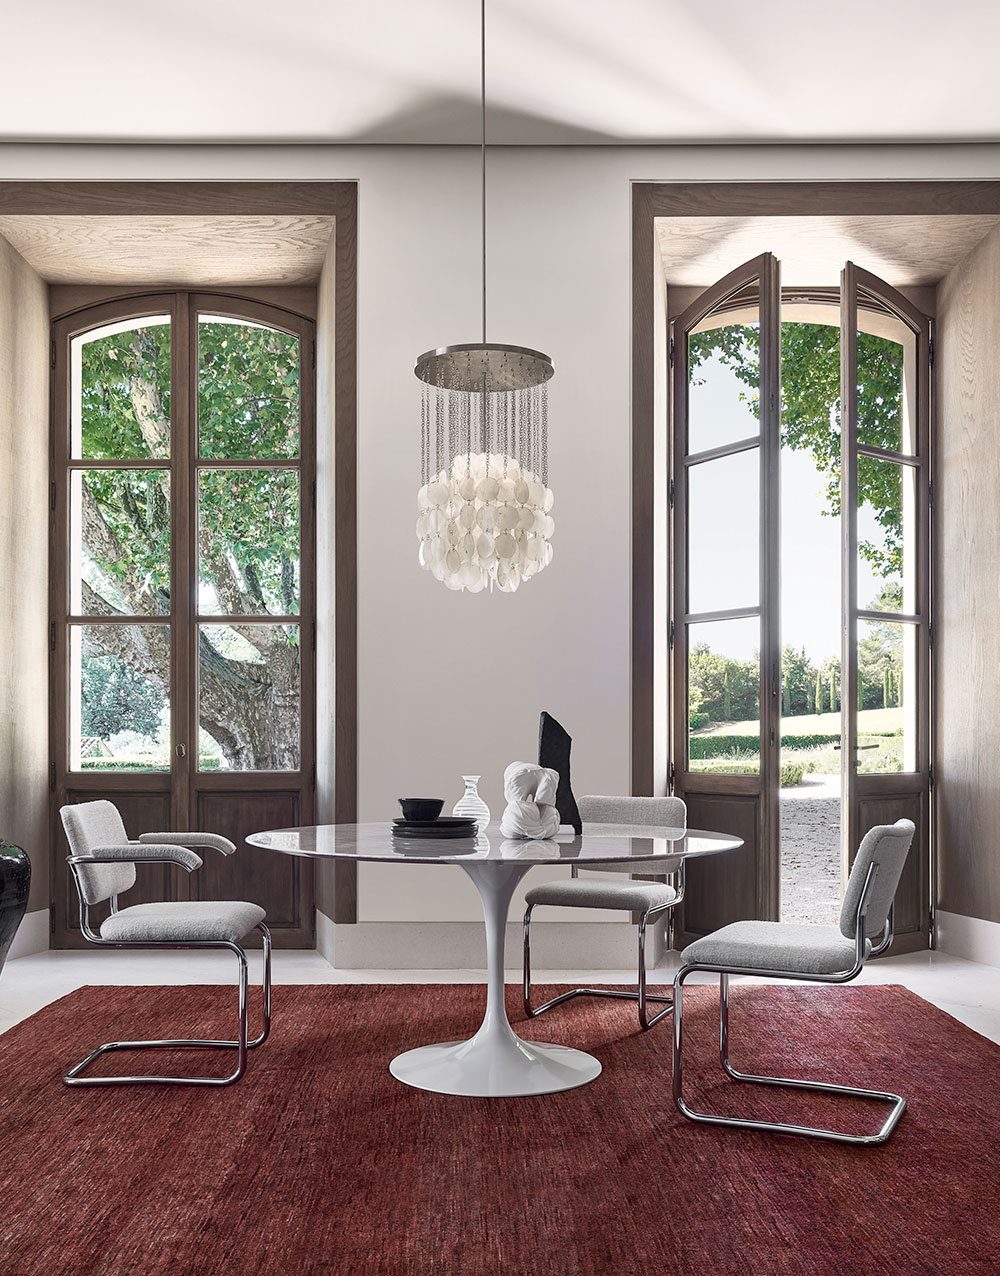 Knoll Dining Room Furniture Saarinen Dining Table with Cesca Chairs